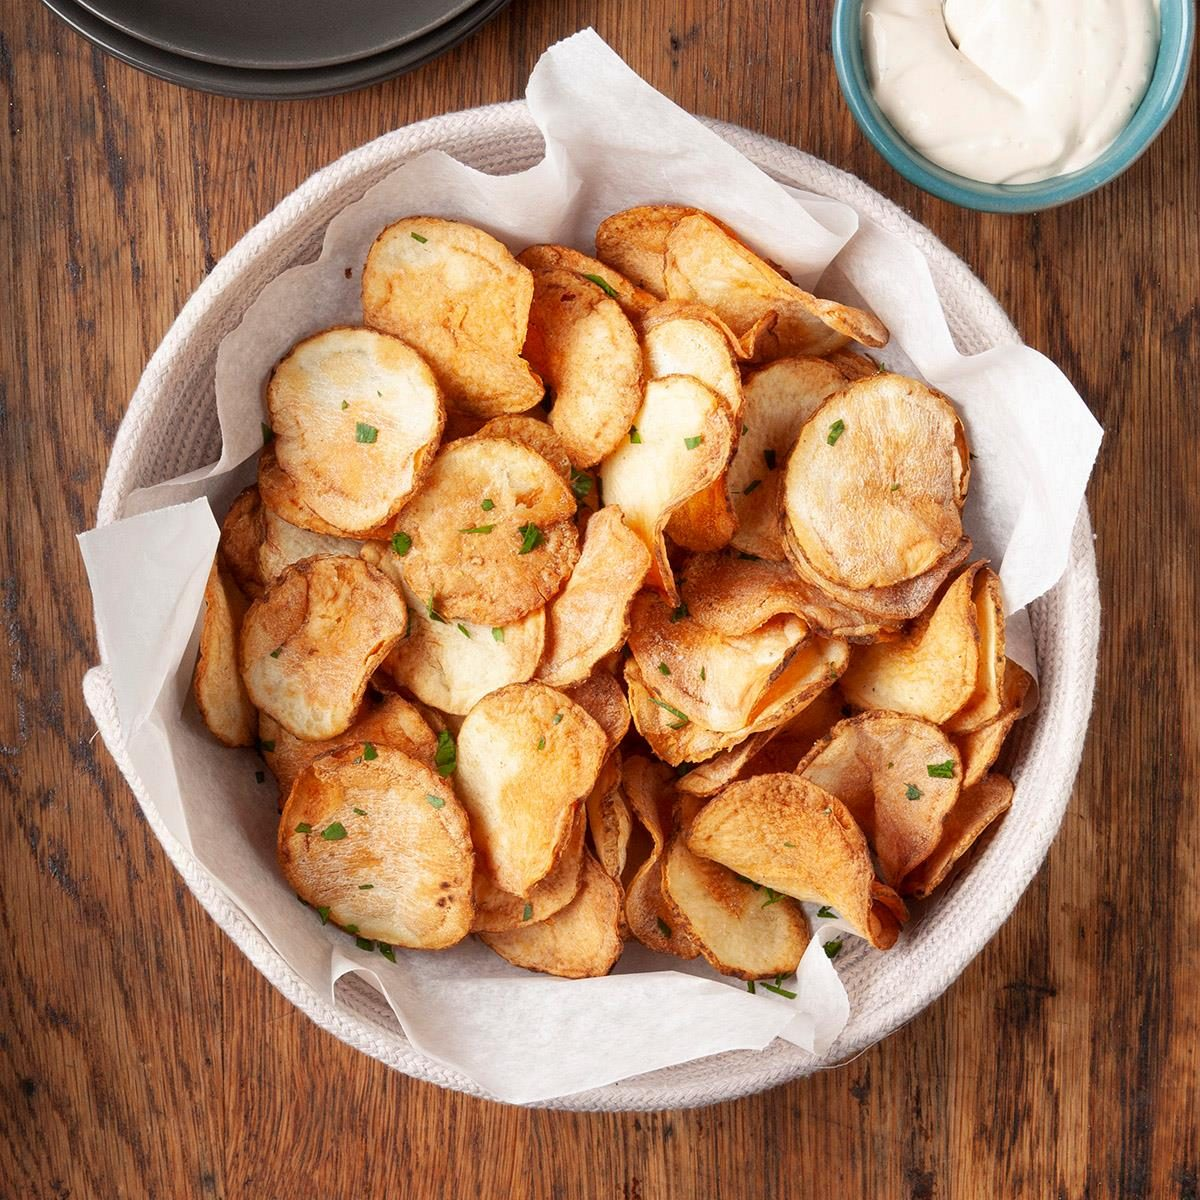 How to Make Potato Chips in Your Air Fryer